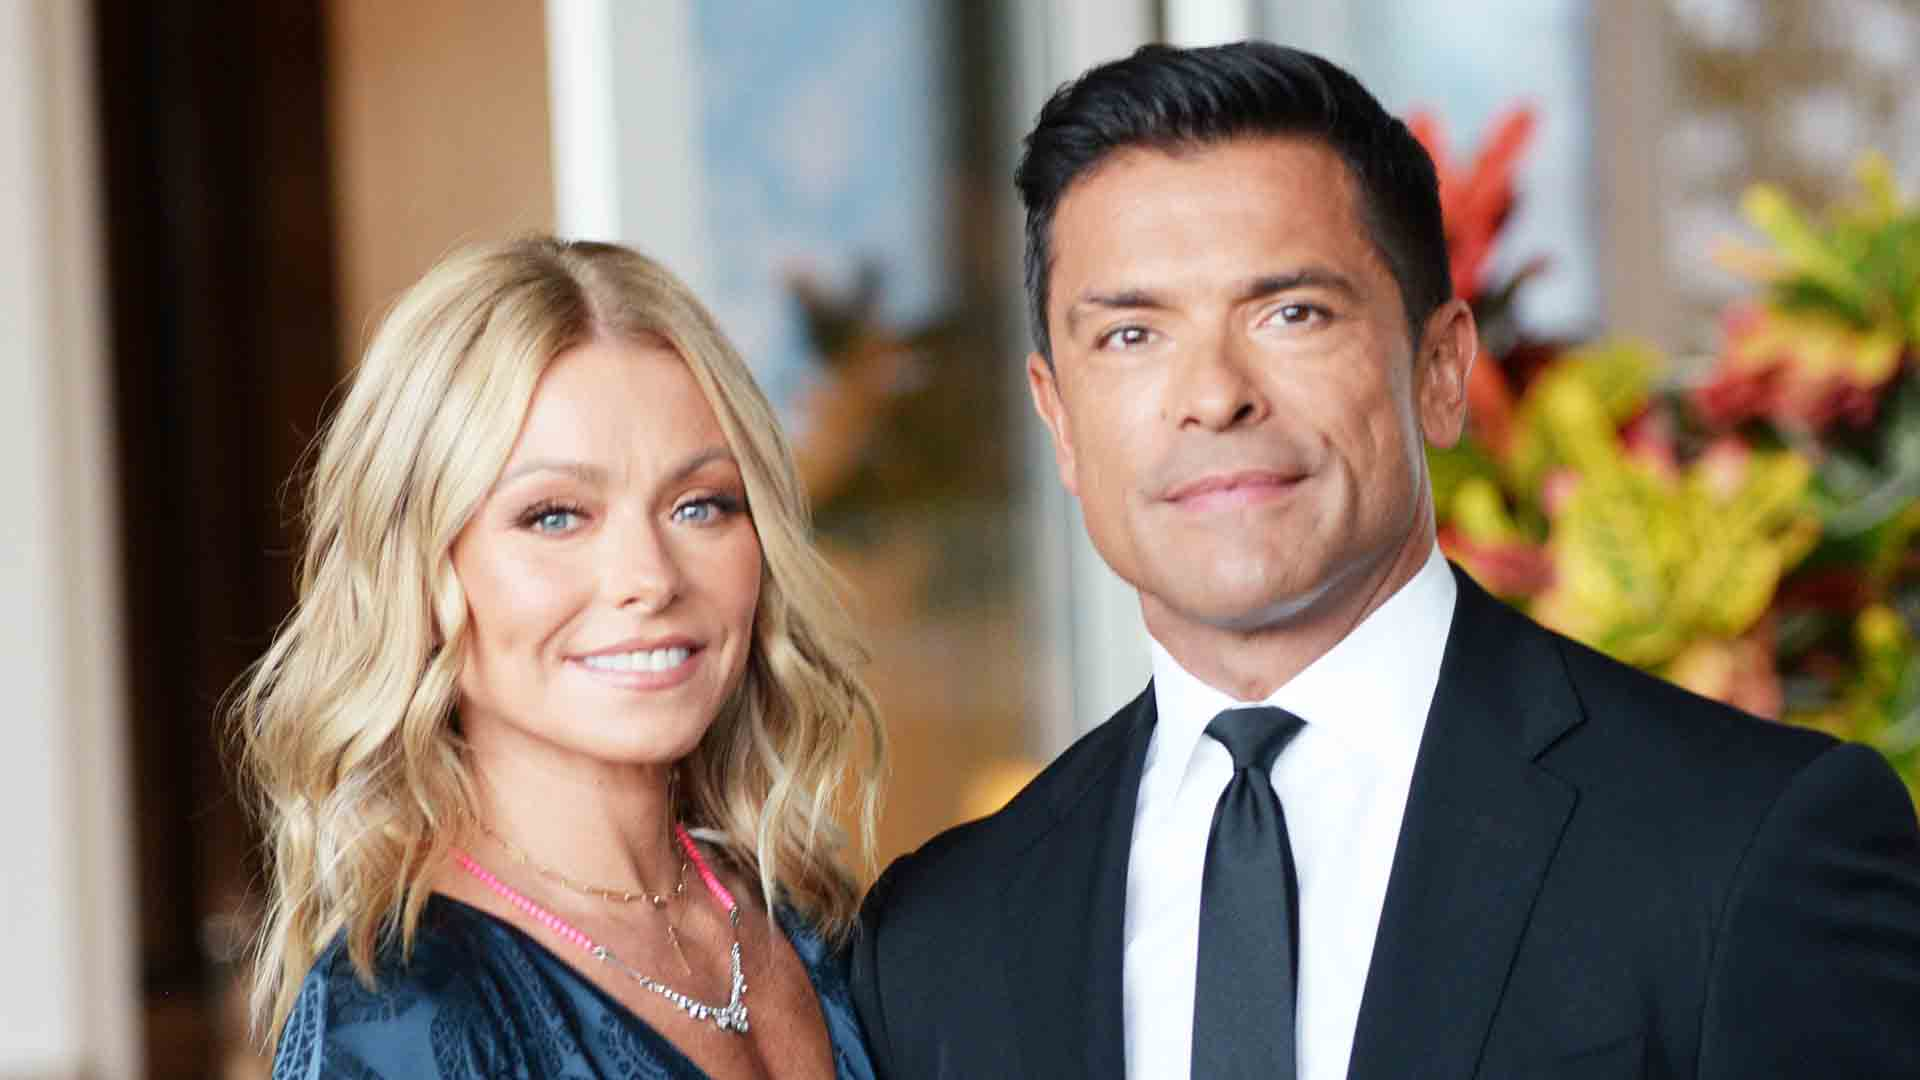 Kelly Ripa Admits Her And Mark Consuelos Are 'Old Fashioned' In Their Marriage Roles